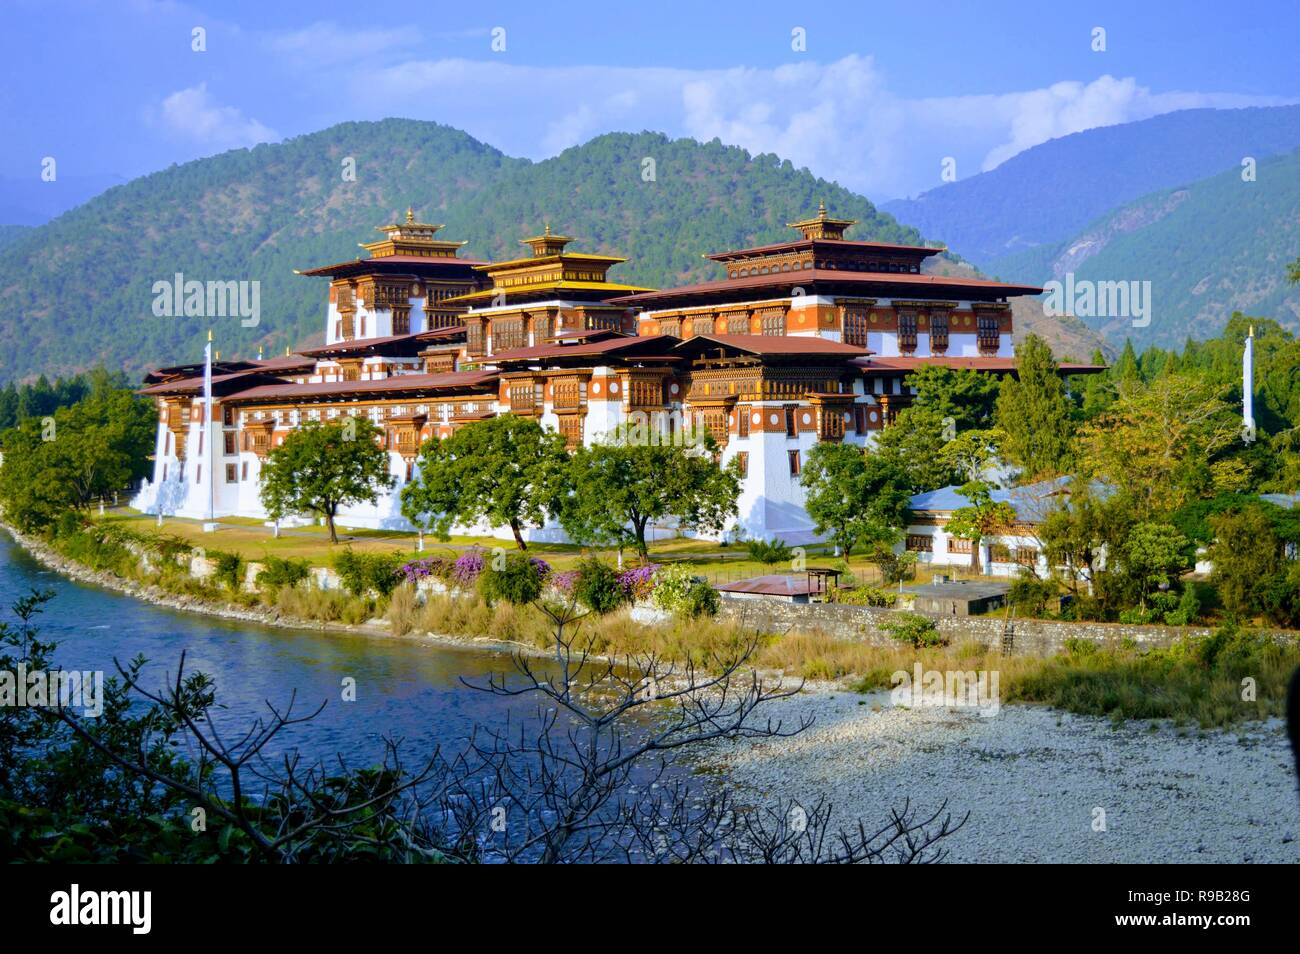 Punakha Dzong Bhutan. Administrative centre of Punakha District in Punakha, Bhutan - Stock Image